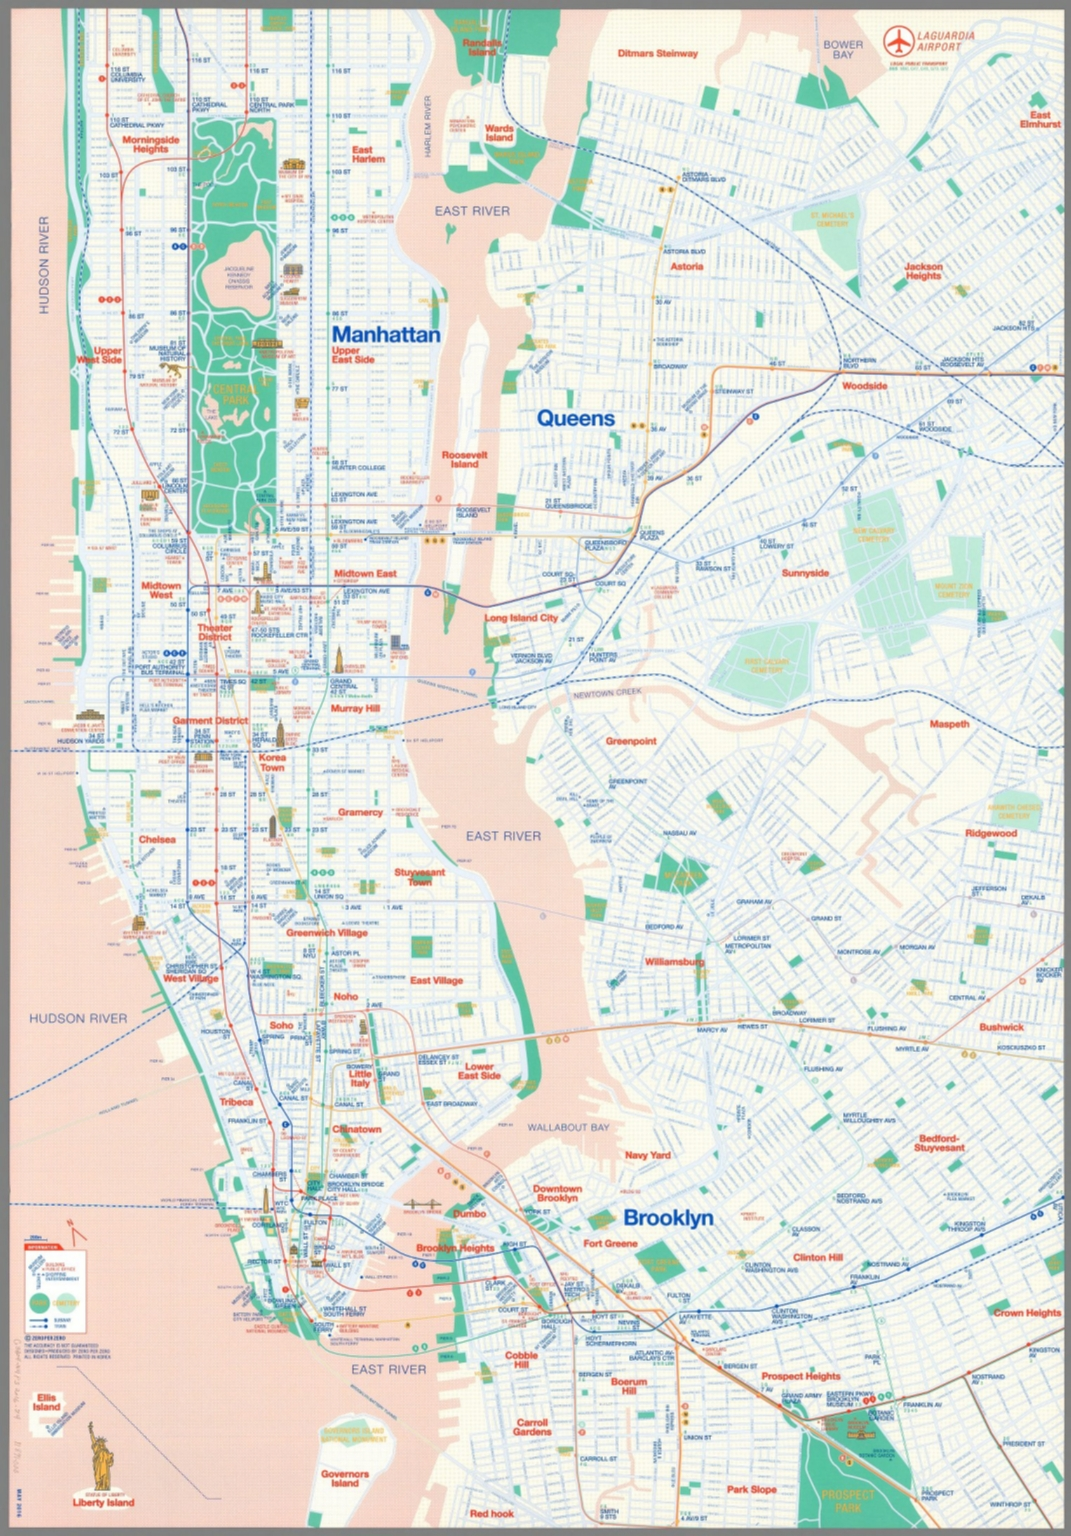 Map Of New York Rail System.Map Of New York City Railway And Subway System Map 2016 David